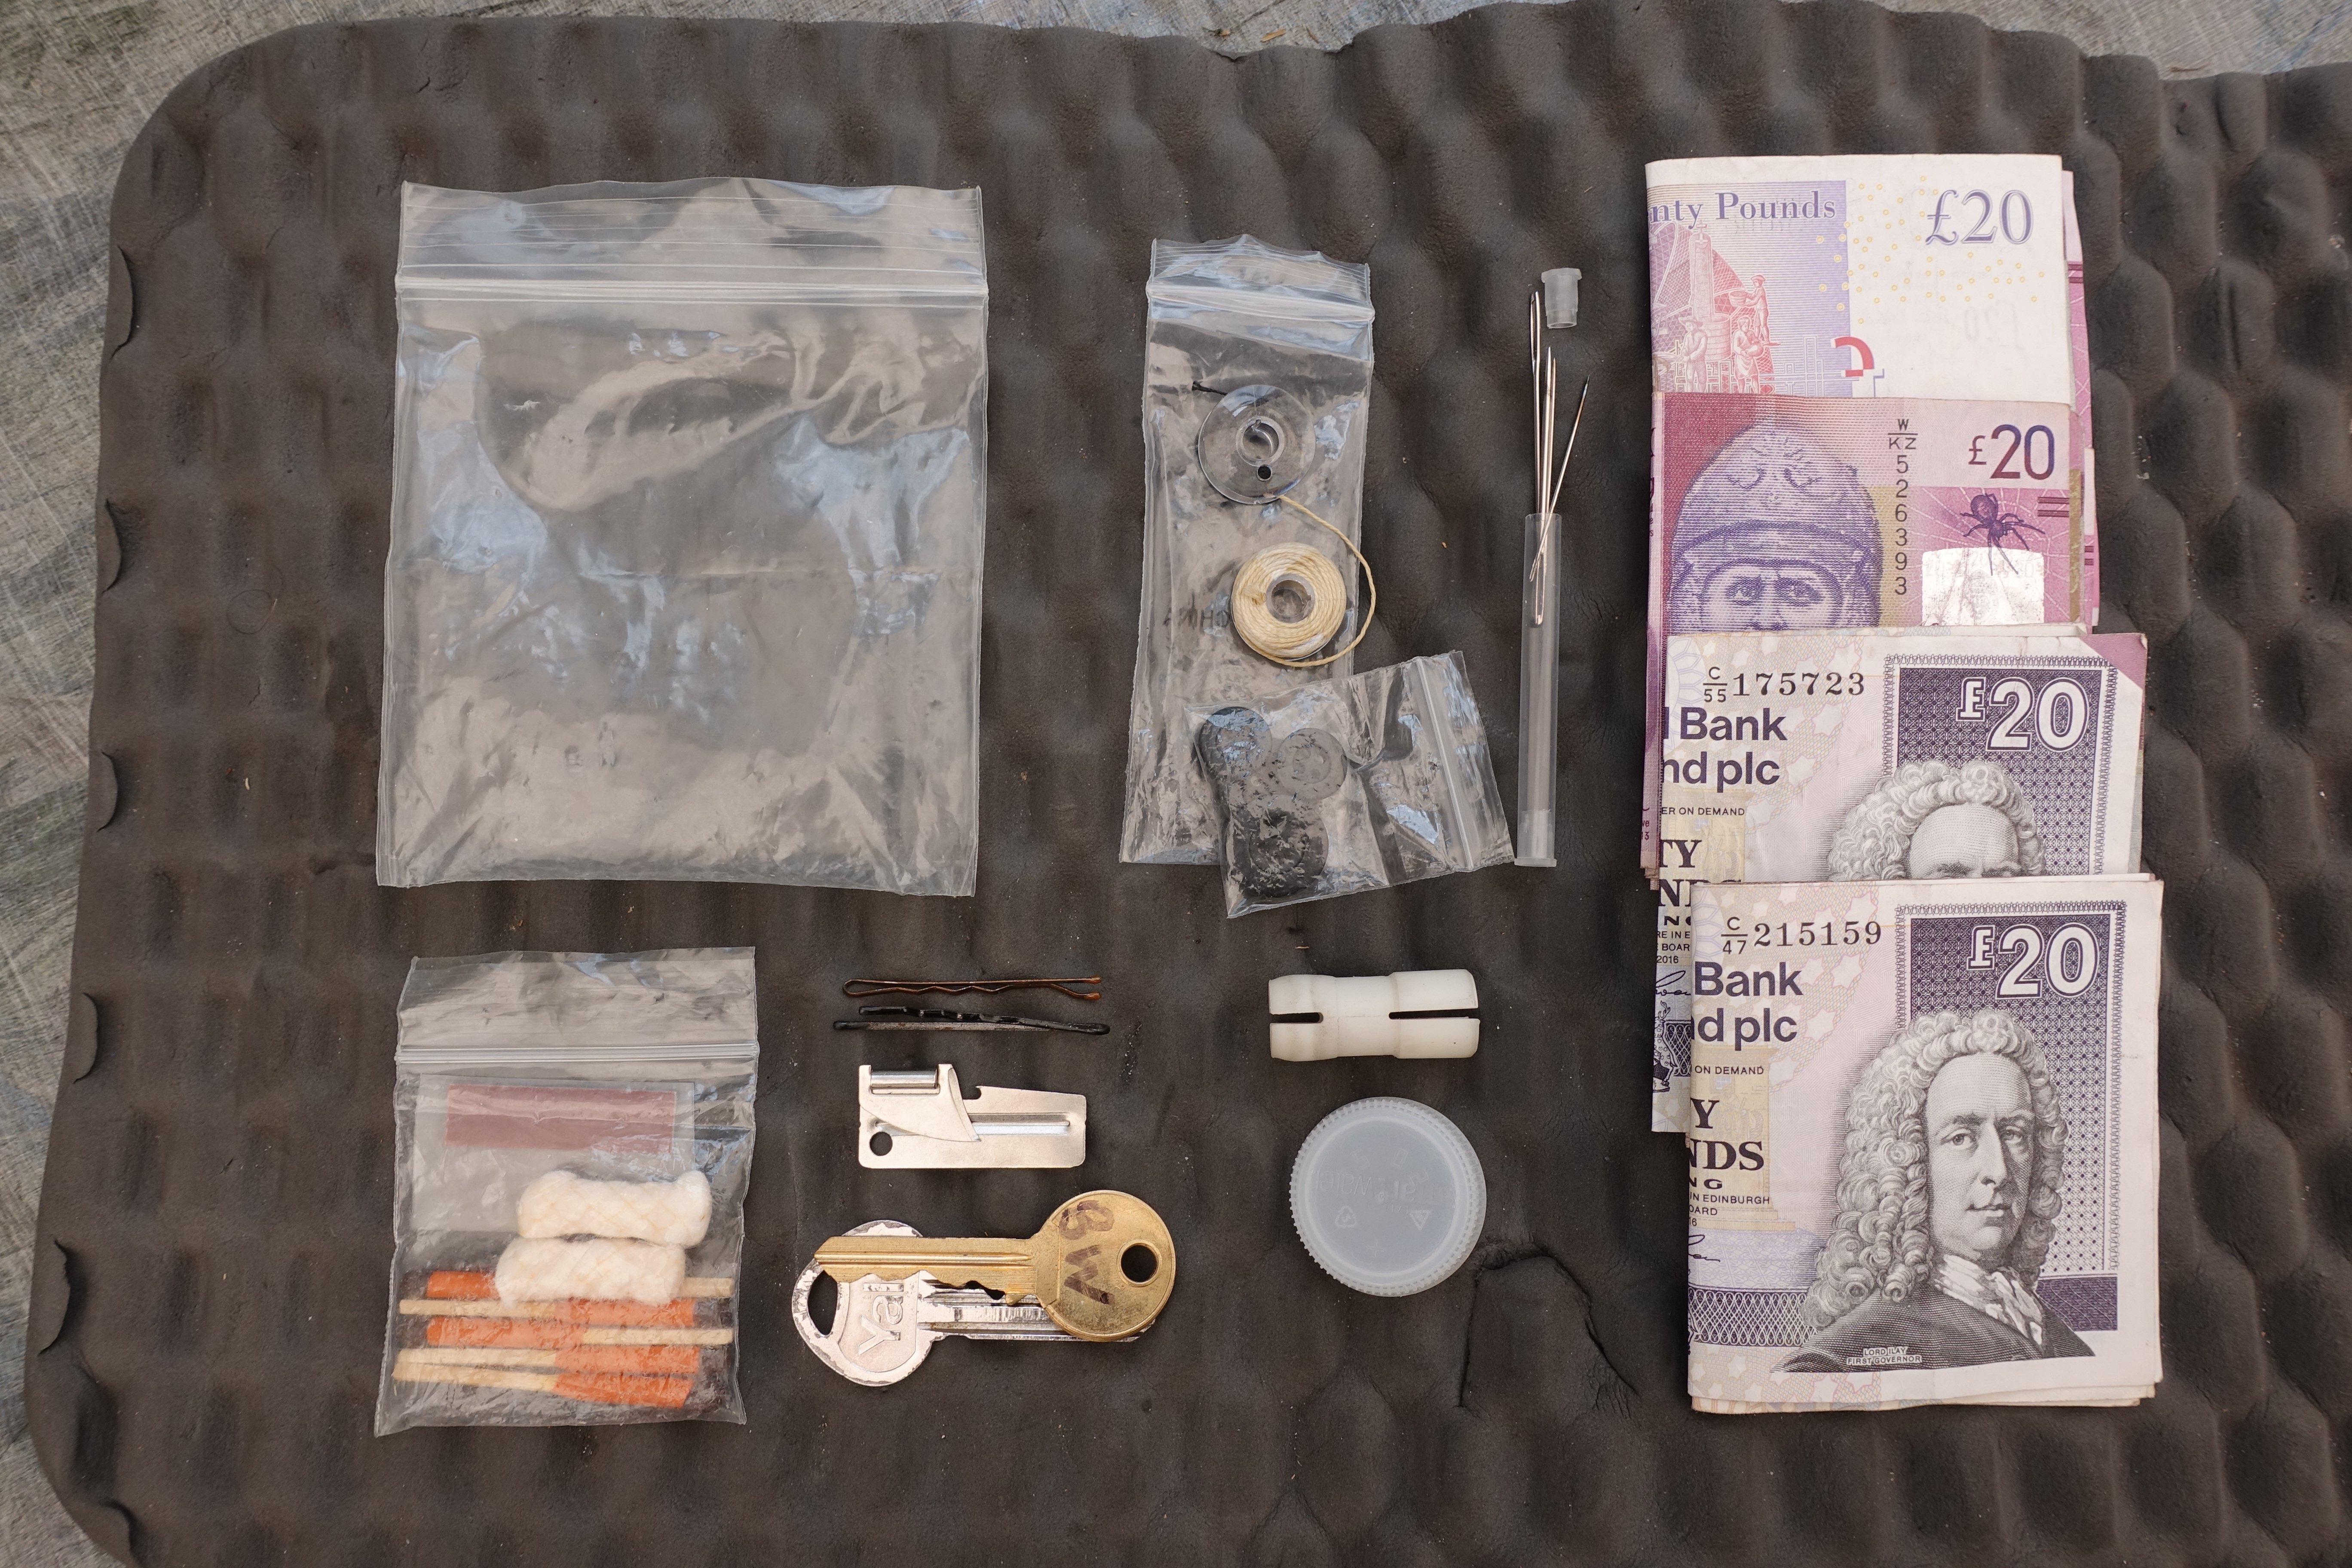 Some of the contents of my backpacking ditty bag- Money, sewing kit, house key and British Waterways water key, emergency fire starter kit, spare water bottle cap, hair grips, to be used as clothes pegs, and a small tin opener